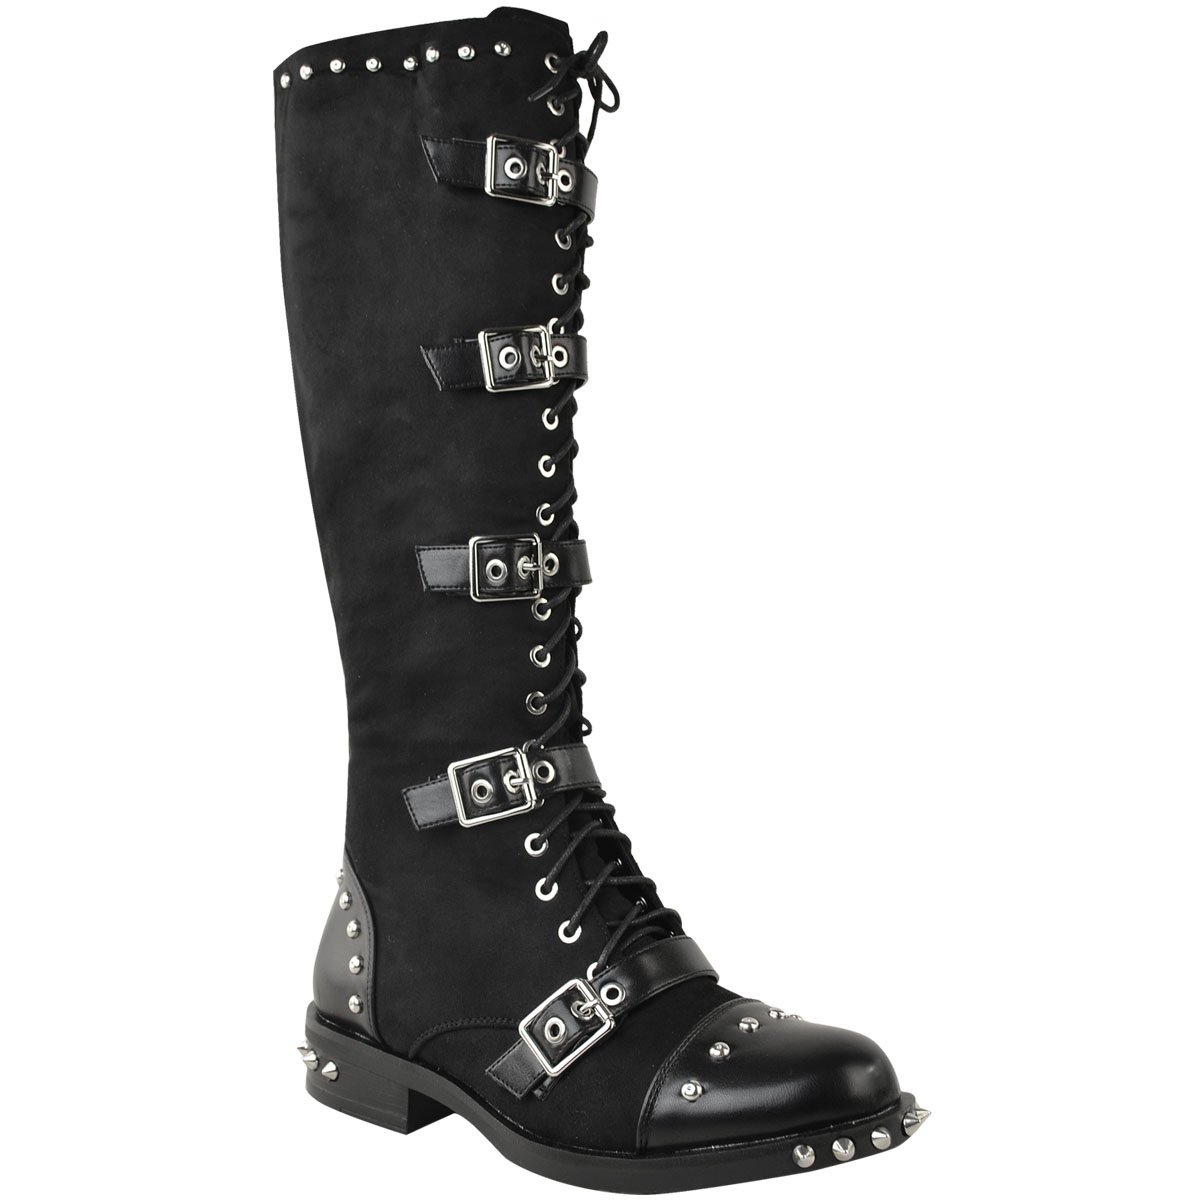 Fashion Thirsty Womens Knee High Studded Punk Grunge Spiky Winter Boots Size 7